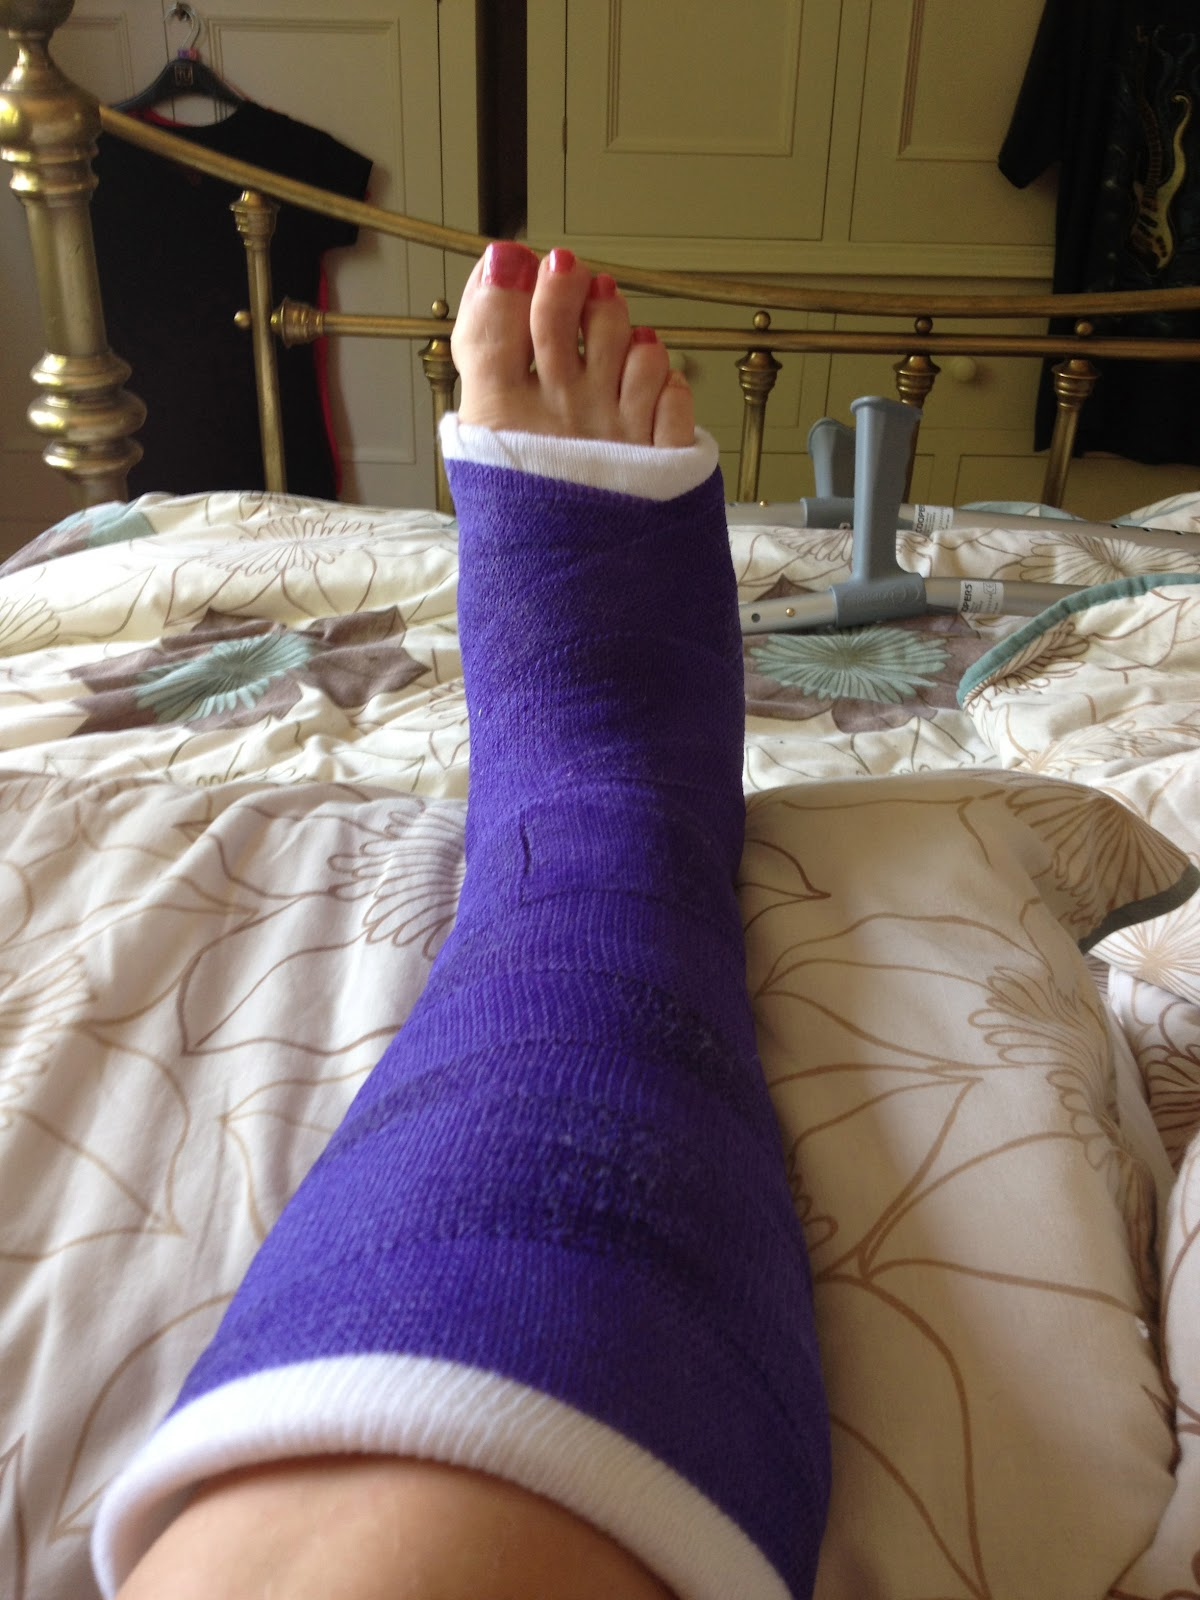 Doll Leg Cast http://onbeingaminimum.blogspot.com/2012/06/not-again-back-in-plaster.html